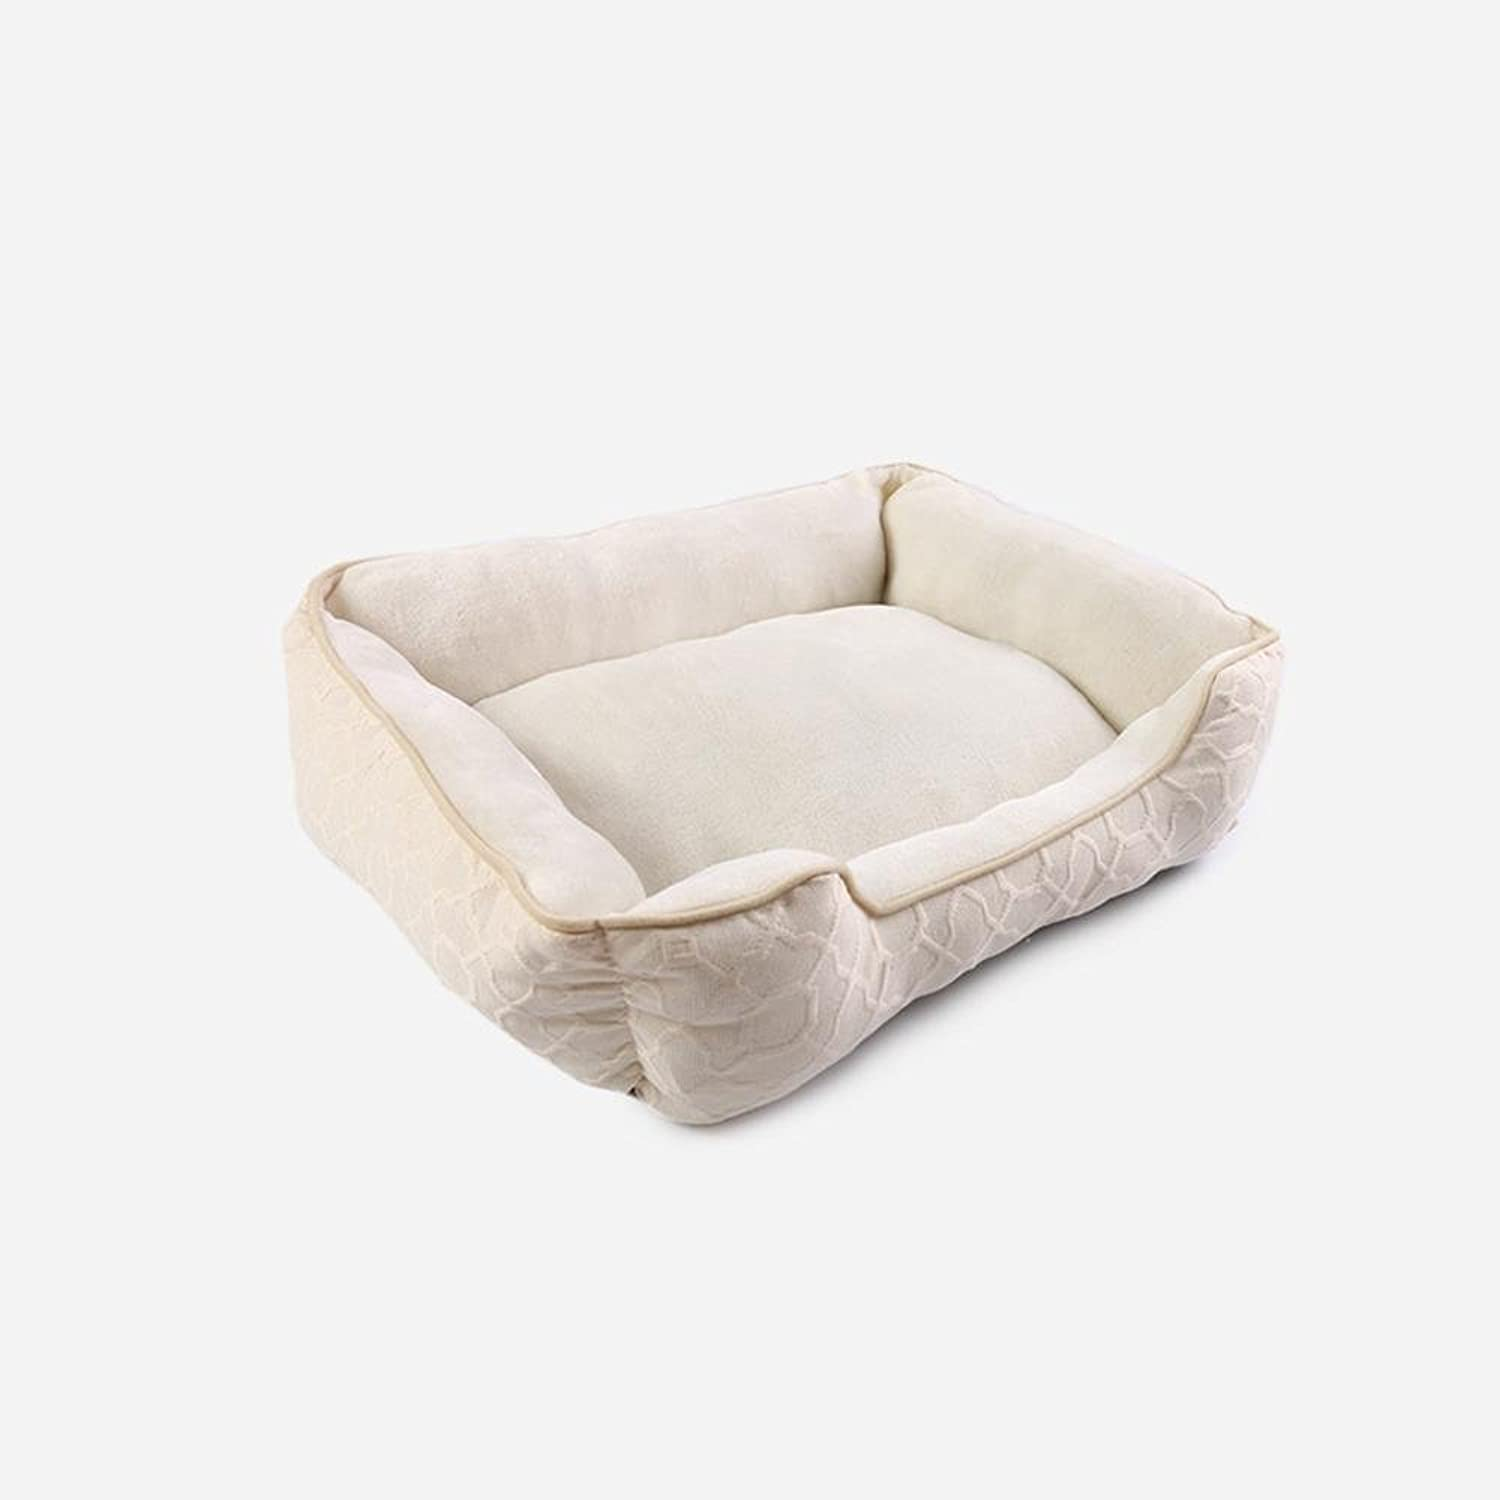 Lozse Pet Beds Square Flannel Kennel 61  45  15cm for Dogs and Cats Sleeping Cushion